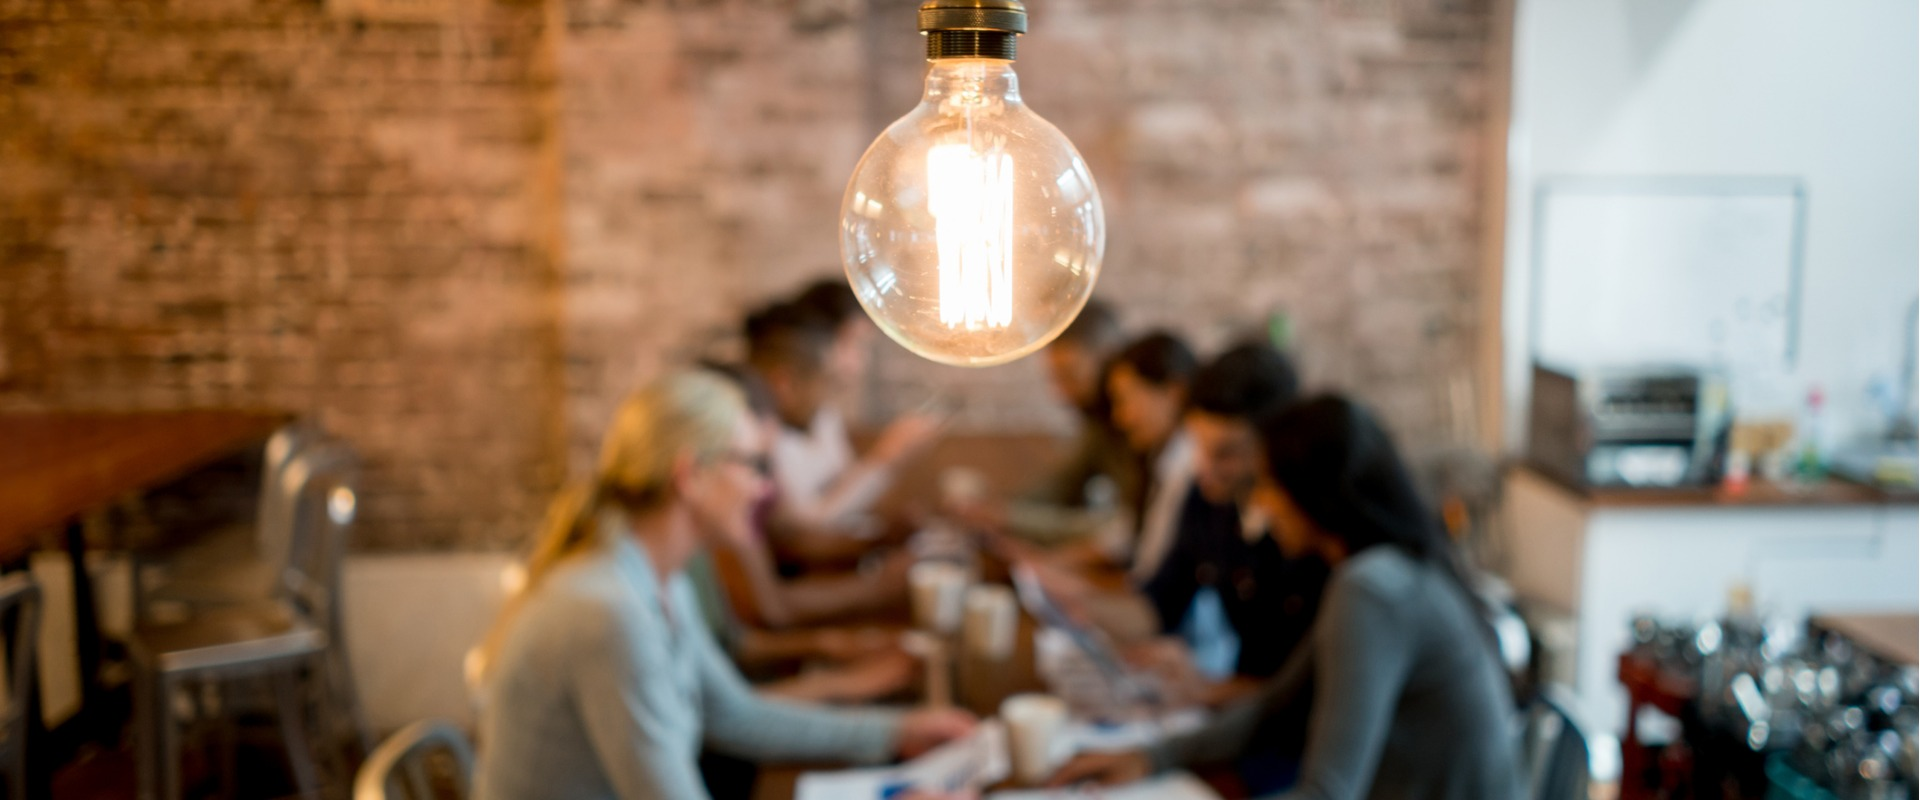 A group of health professionals working together around a table. A lightbulb hangs over their heads.